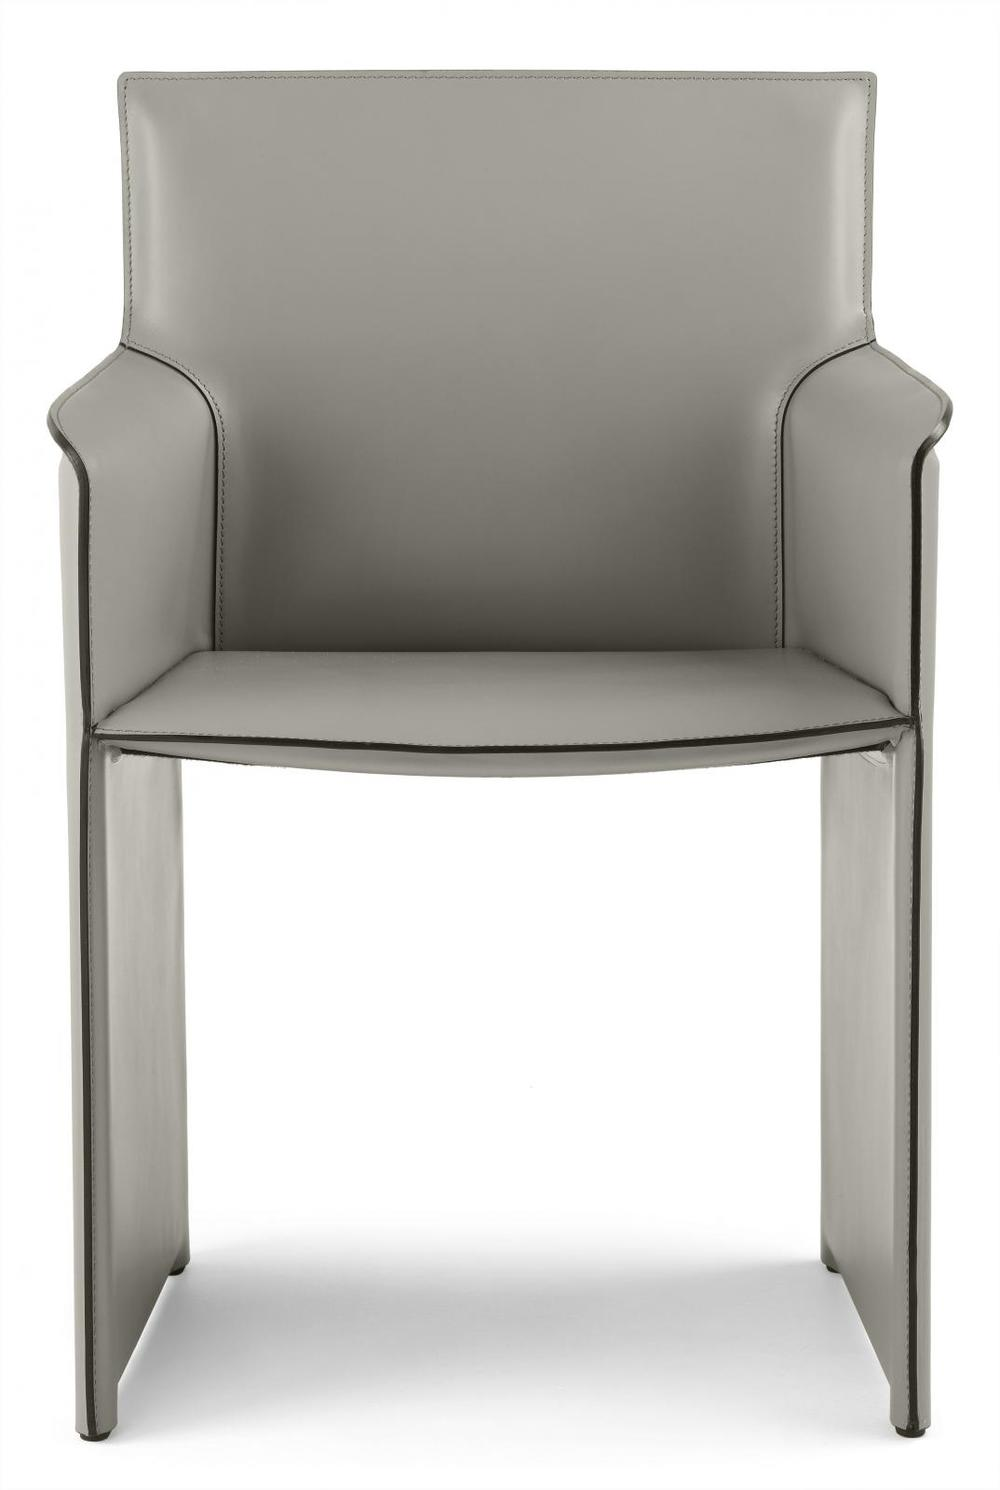 MDC 115 Modern Dining Chairs